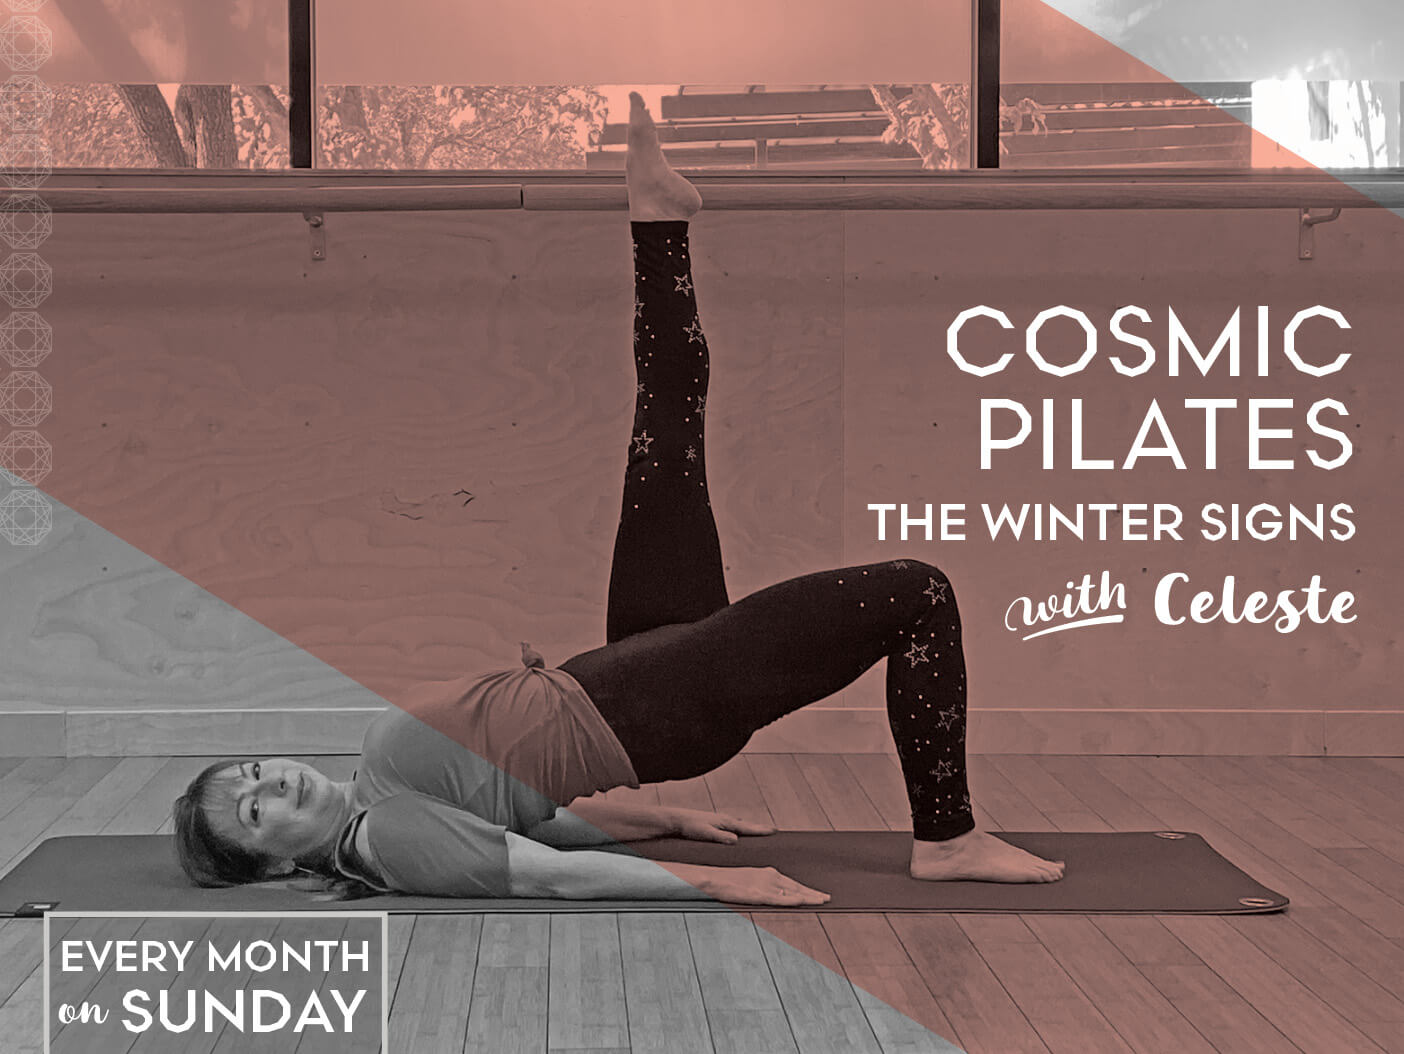 Cosmic Pilates: Winter Signs